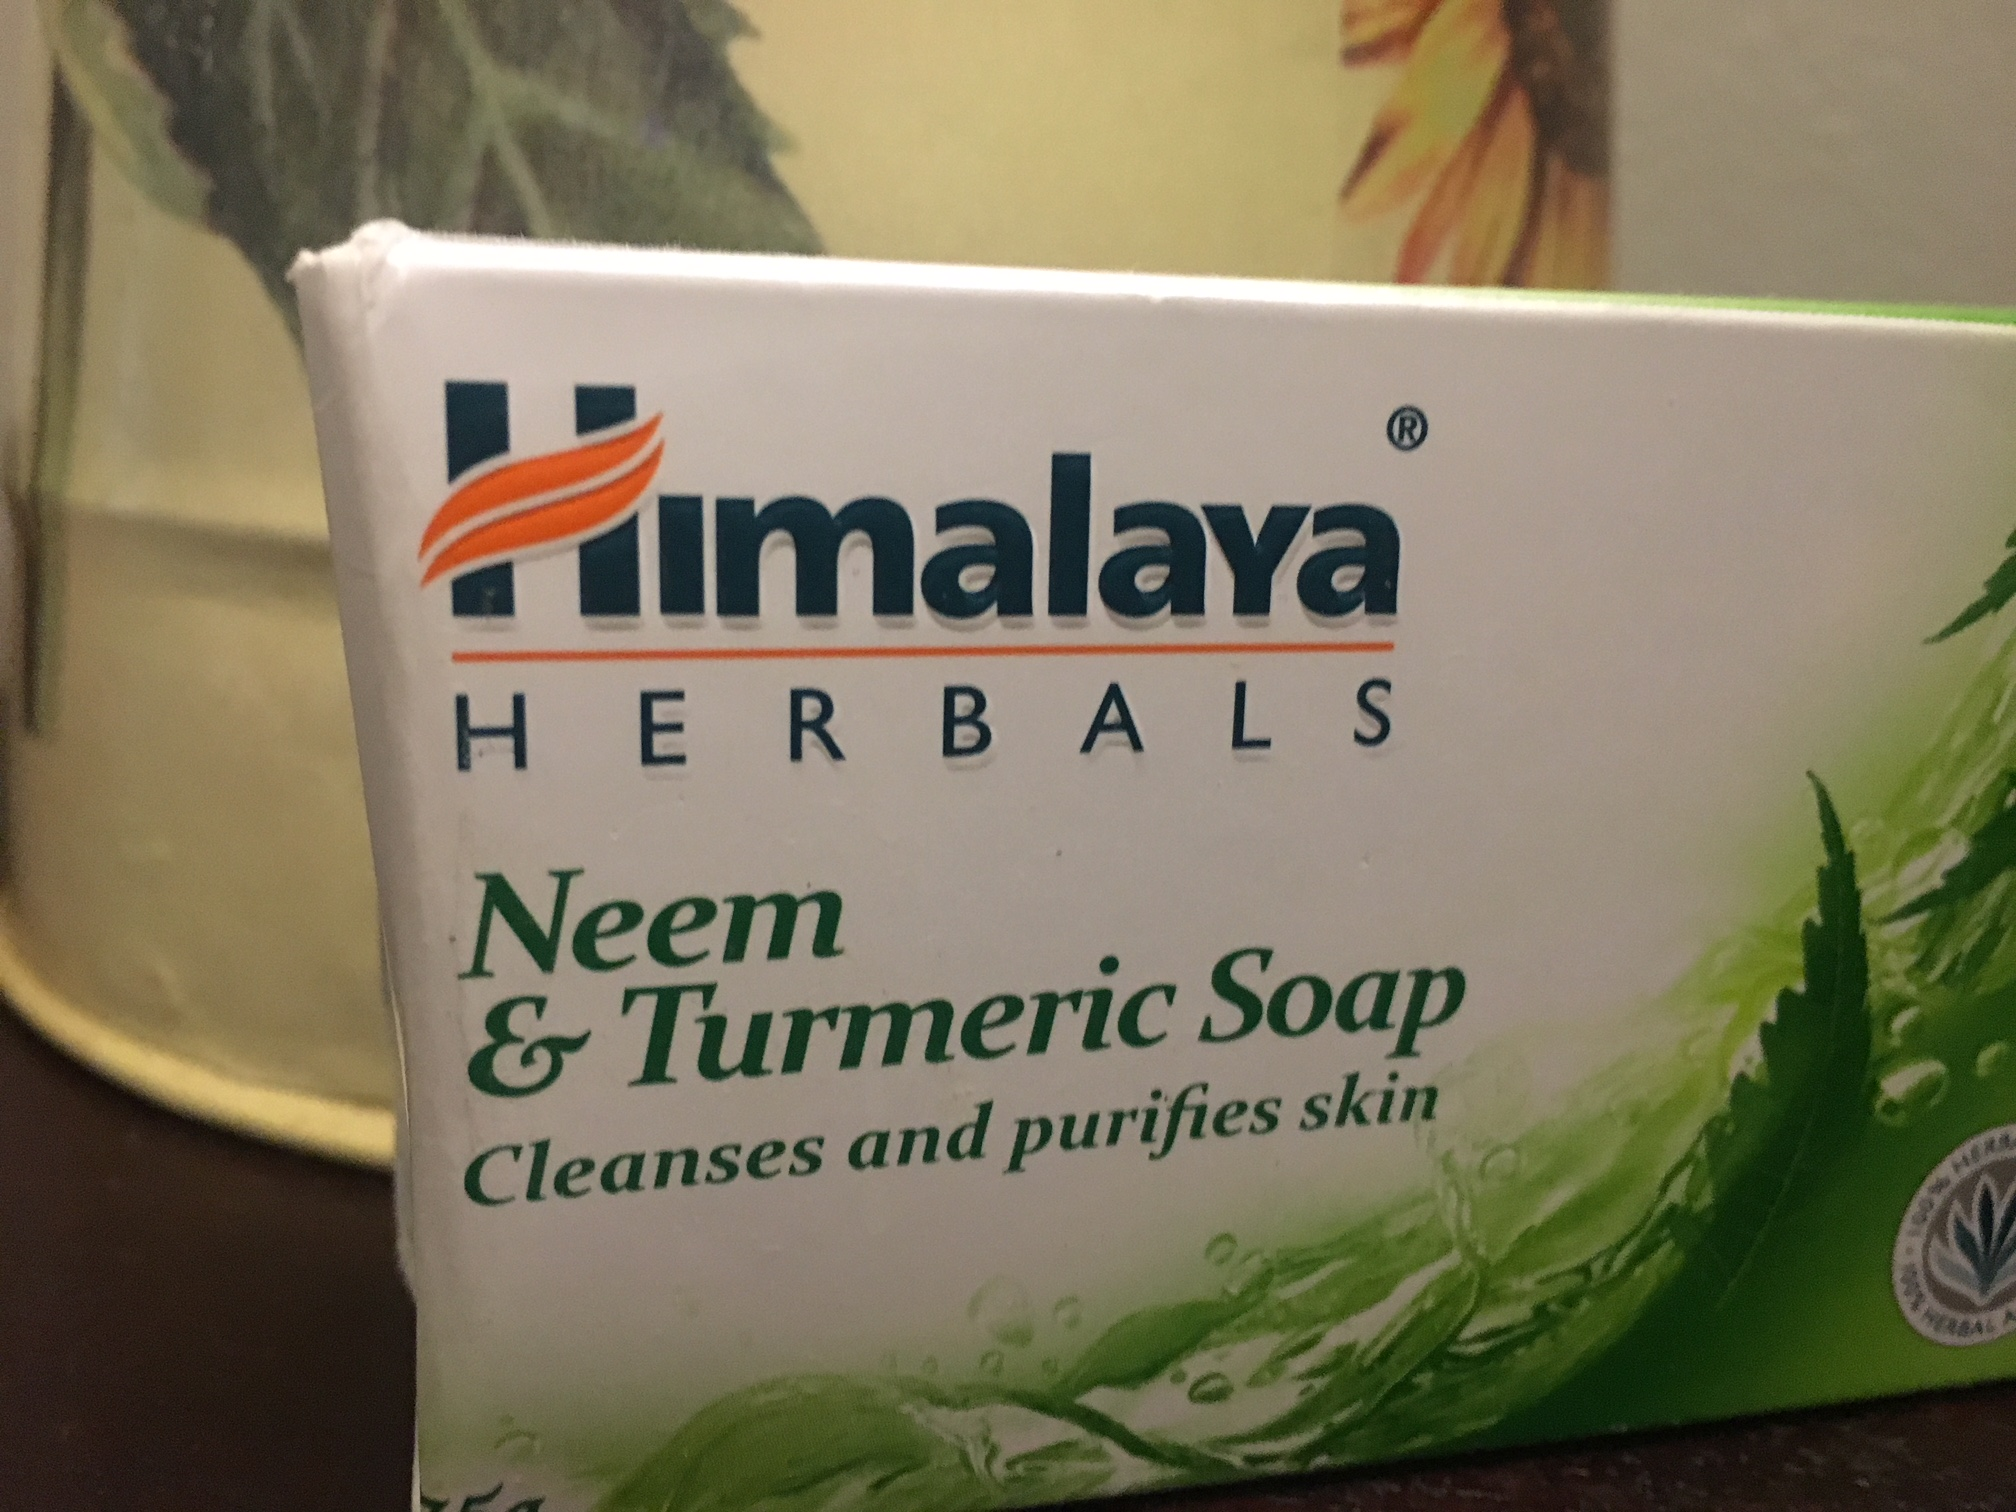 Himalaya Herbals Neem And Turmeric Soap-Good for oily and combination skin-By prernakapur